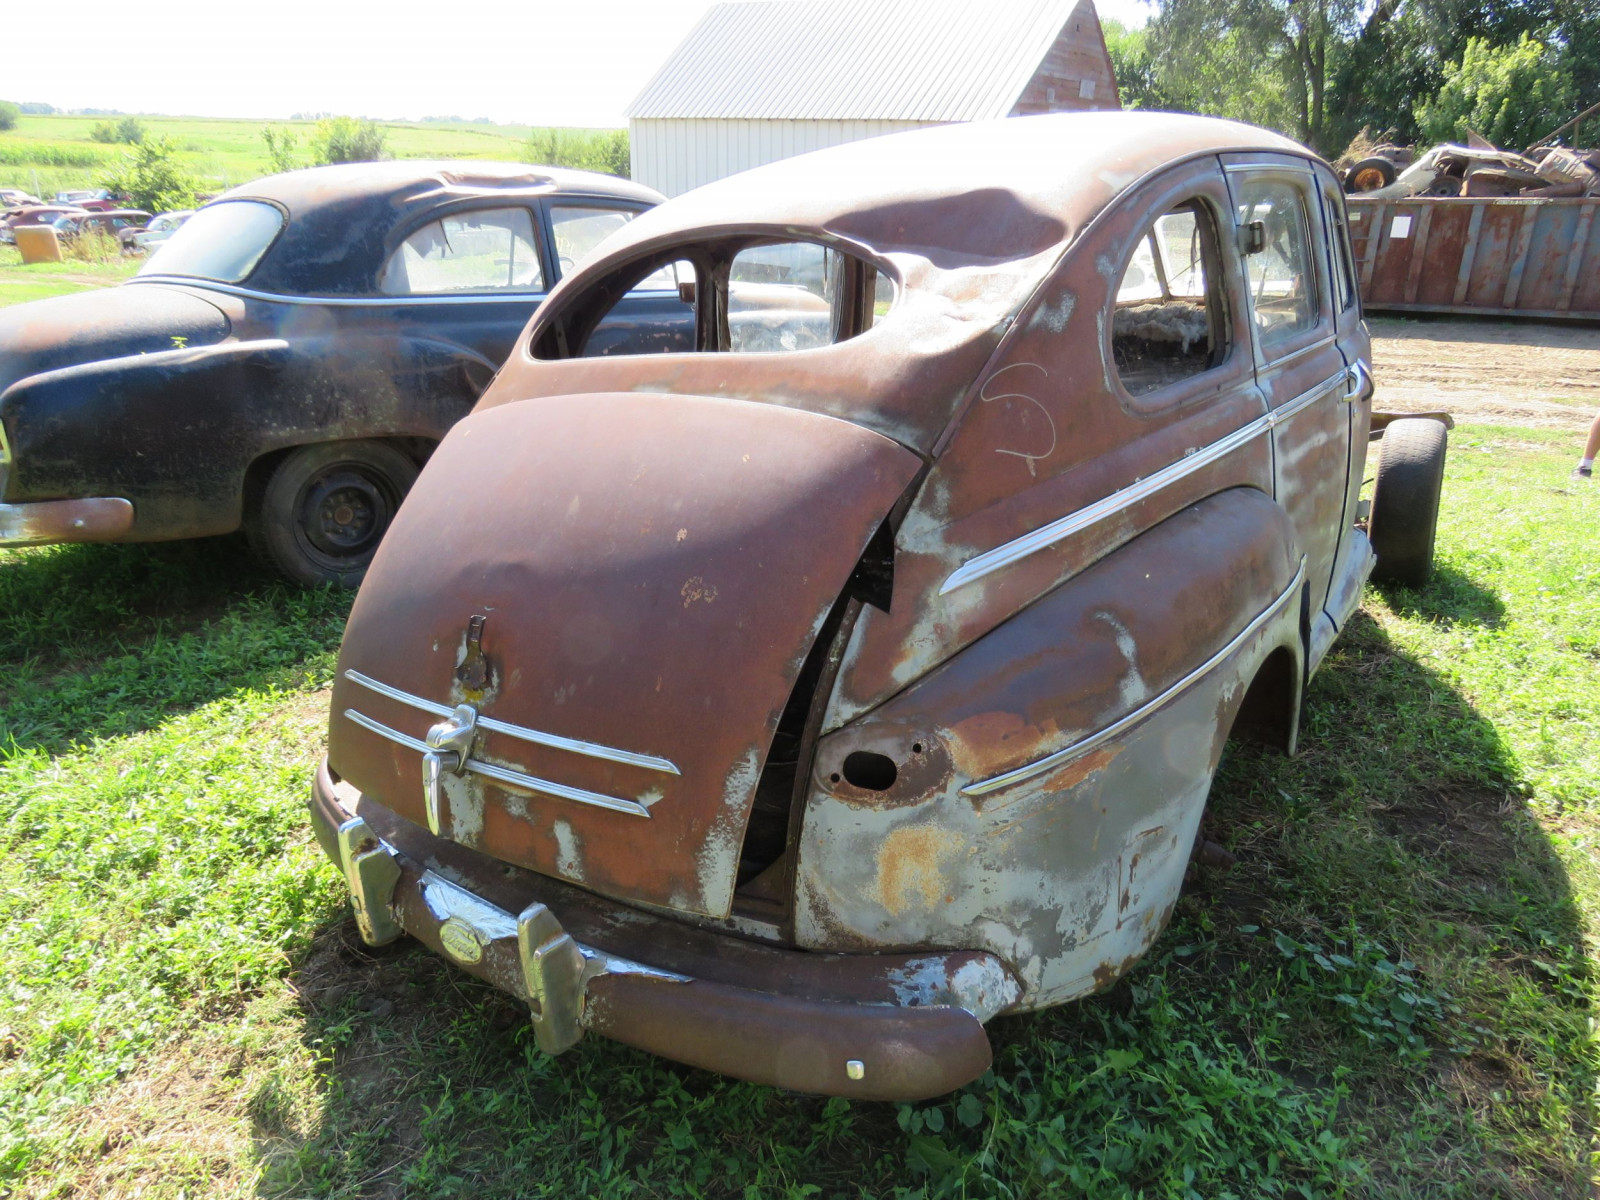 1947 Ford 2dr Sedan for Project or Parts - Image 3